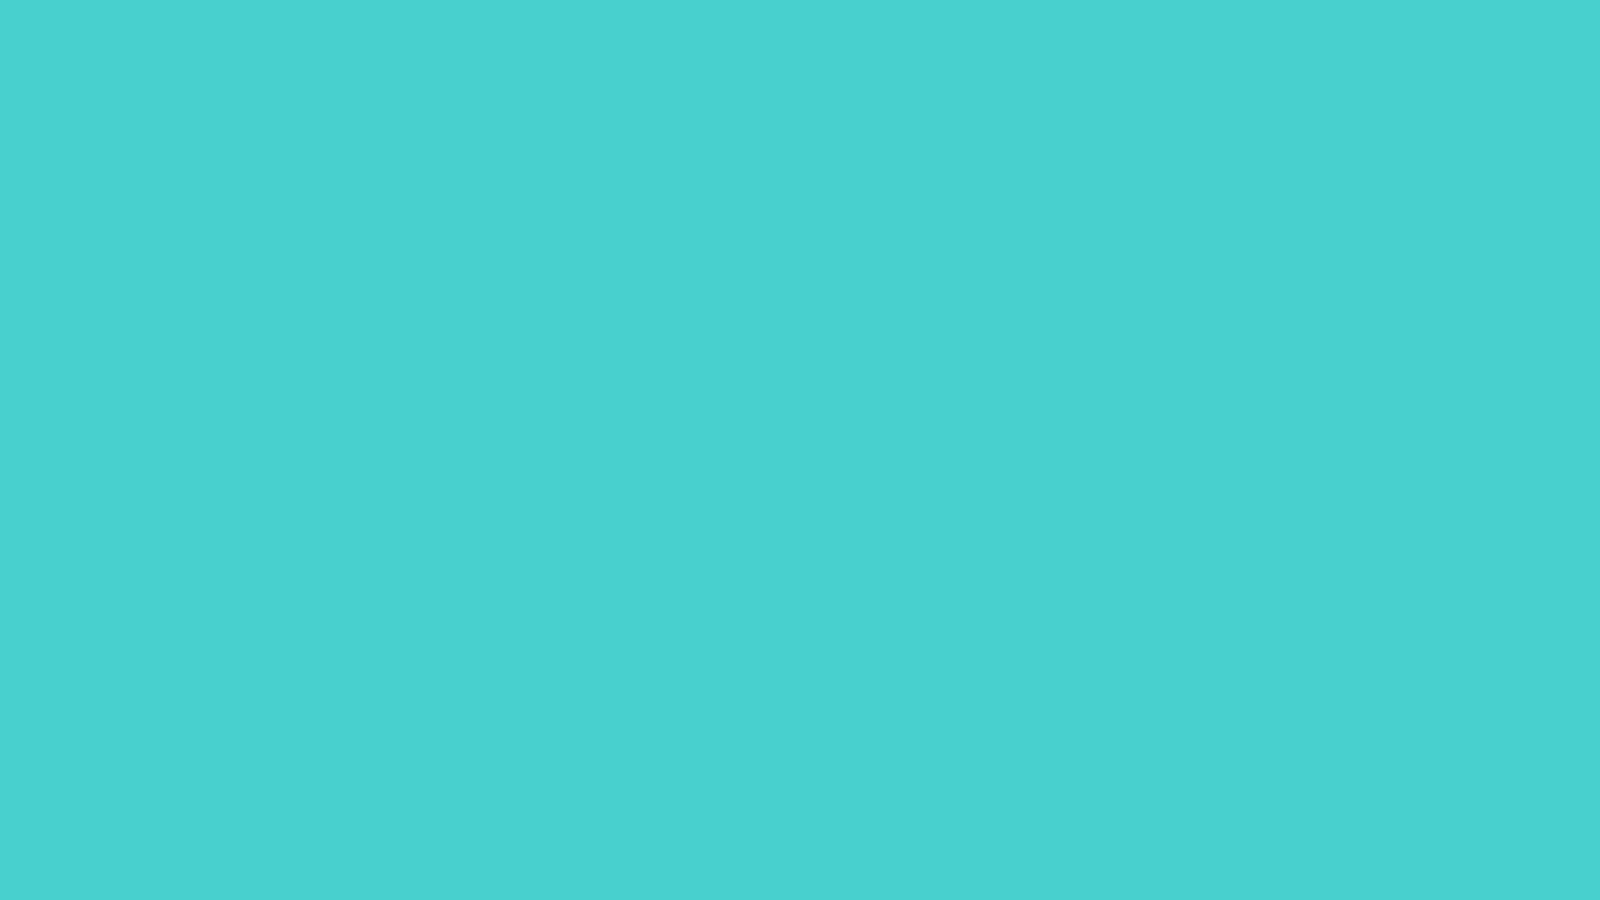 1600x900 Medium Turquoise Solid Color Background